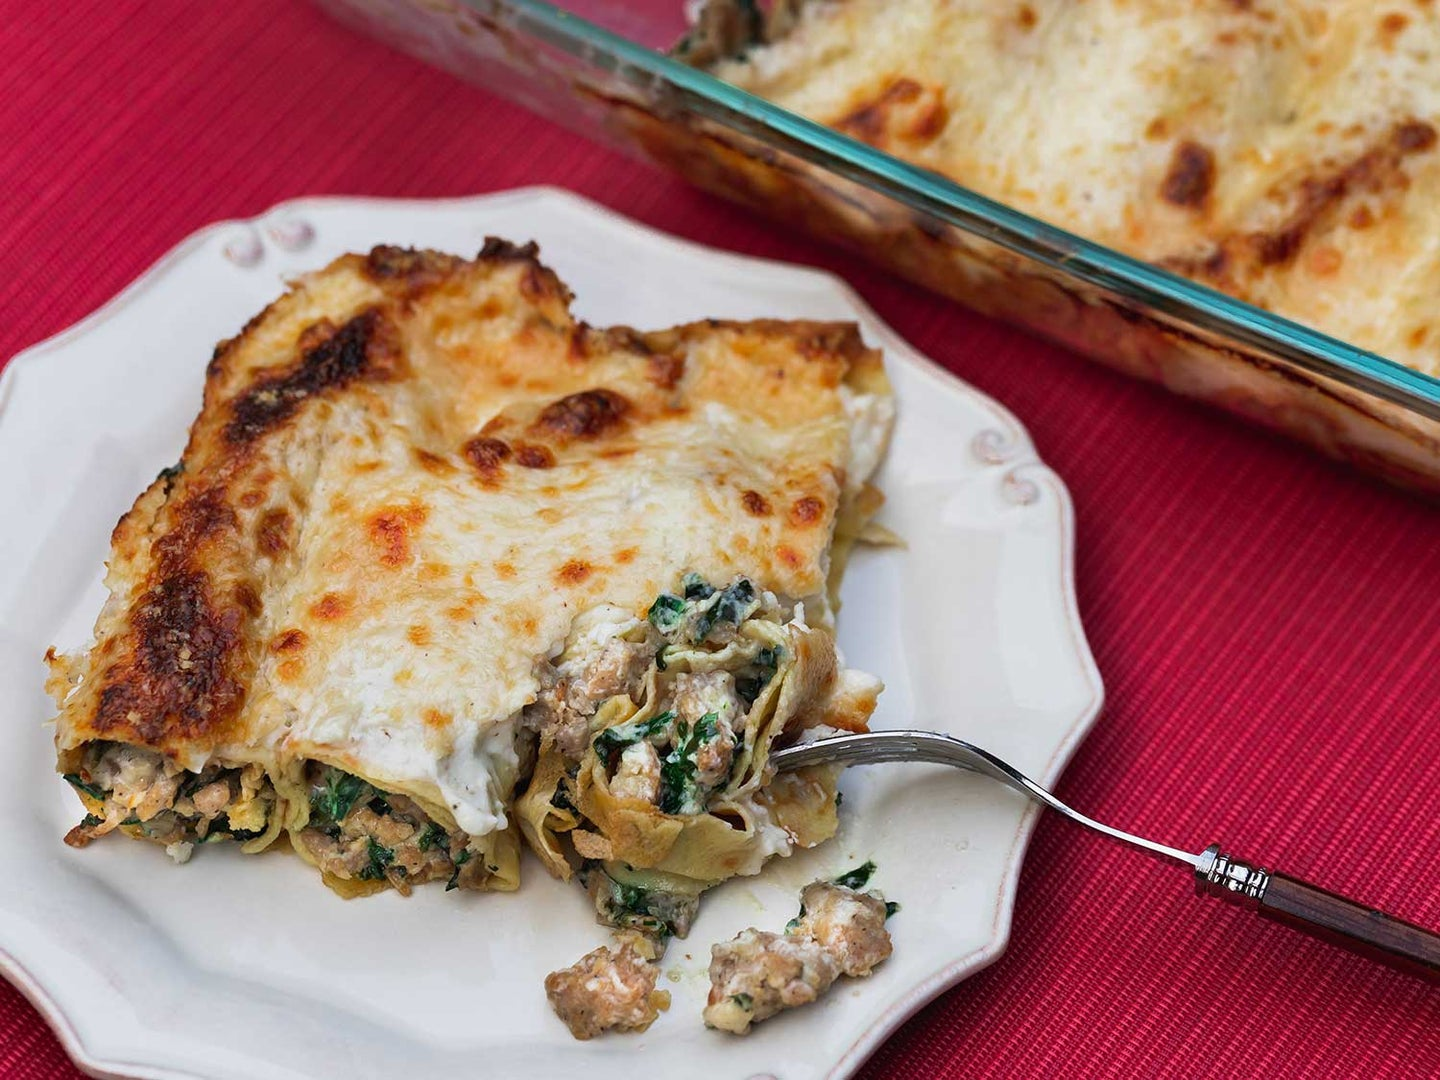 Crespelle with Sausage and Swiss Chard